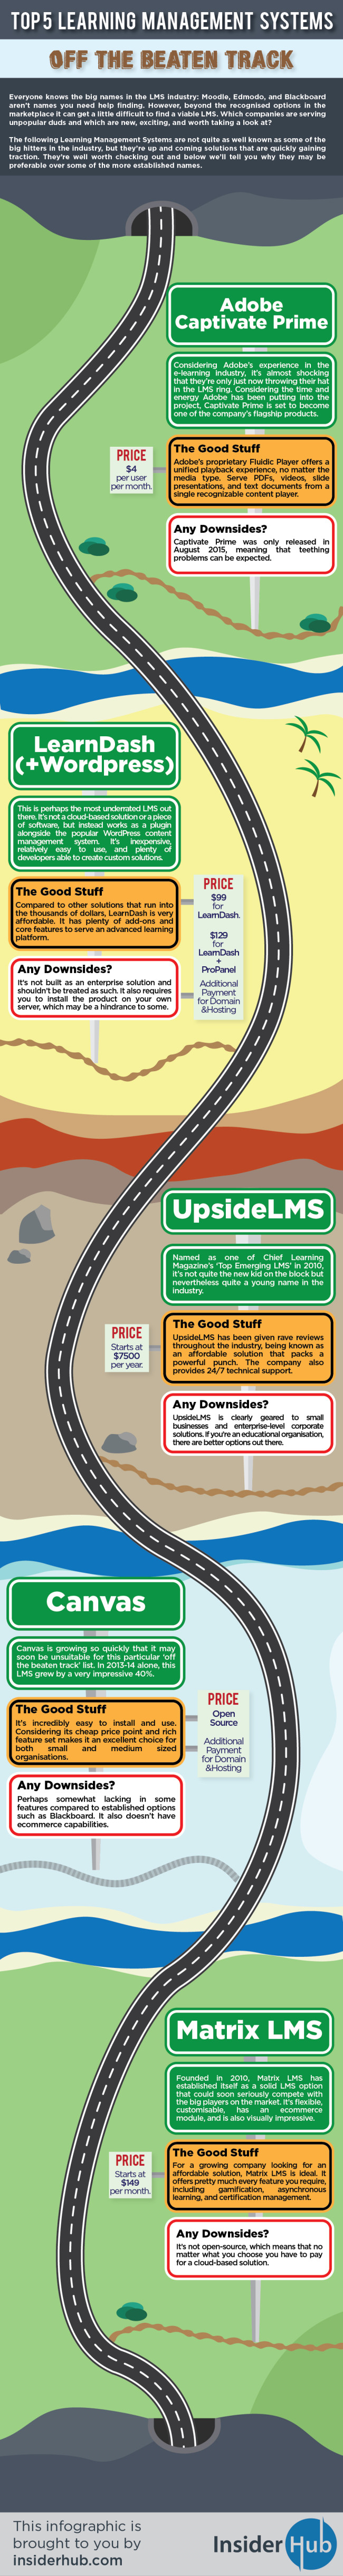 Top-5-LMS-Off-the-beaten-track-01